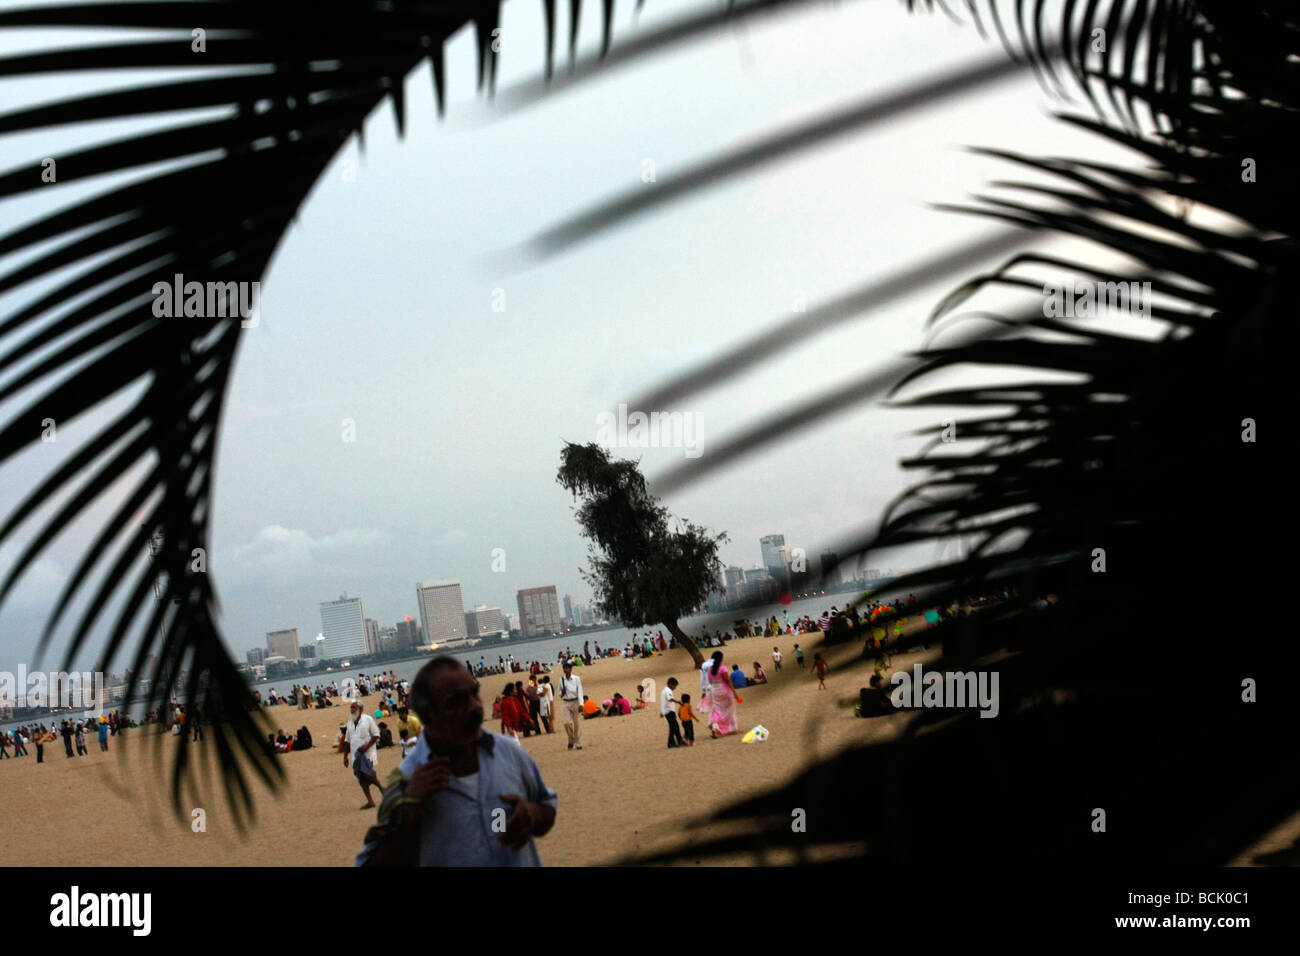 A colorful evening crowd at Chowpatty Beach with Nariman Point visible in the background in Mumbai (Bombay) in India - Stock Image